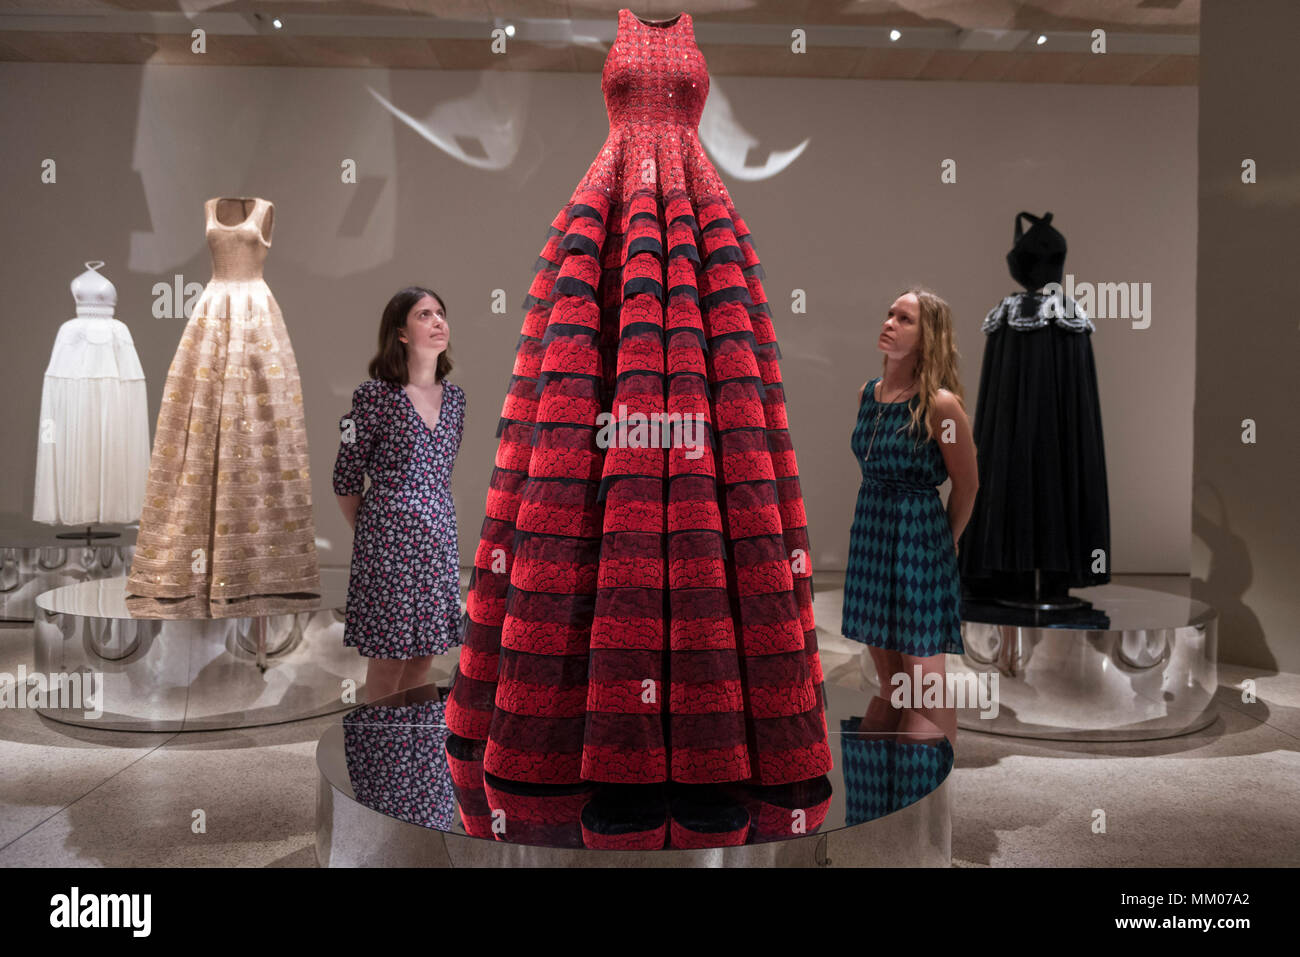 London, UK.  9 May 2018.  Staff members pose at the preview of 'Azzedine Alaïa:  The Couturier', the first UK exhibition of Azzedine Alaïa examining the work of one of the most respected fashion designers in history.  Over 60 rare and iconic garments are on display alongside a series of specially commissioned pieces.  The exhibition runs 10 May to 7 October 2018 at the Design Museum.   Credit: Stephen Chung / Alamy Live News - Stock Image